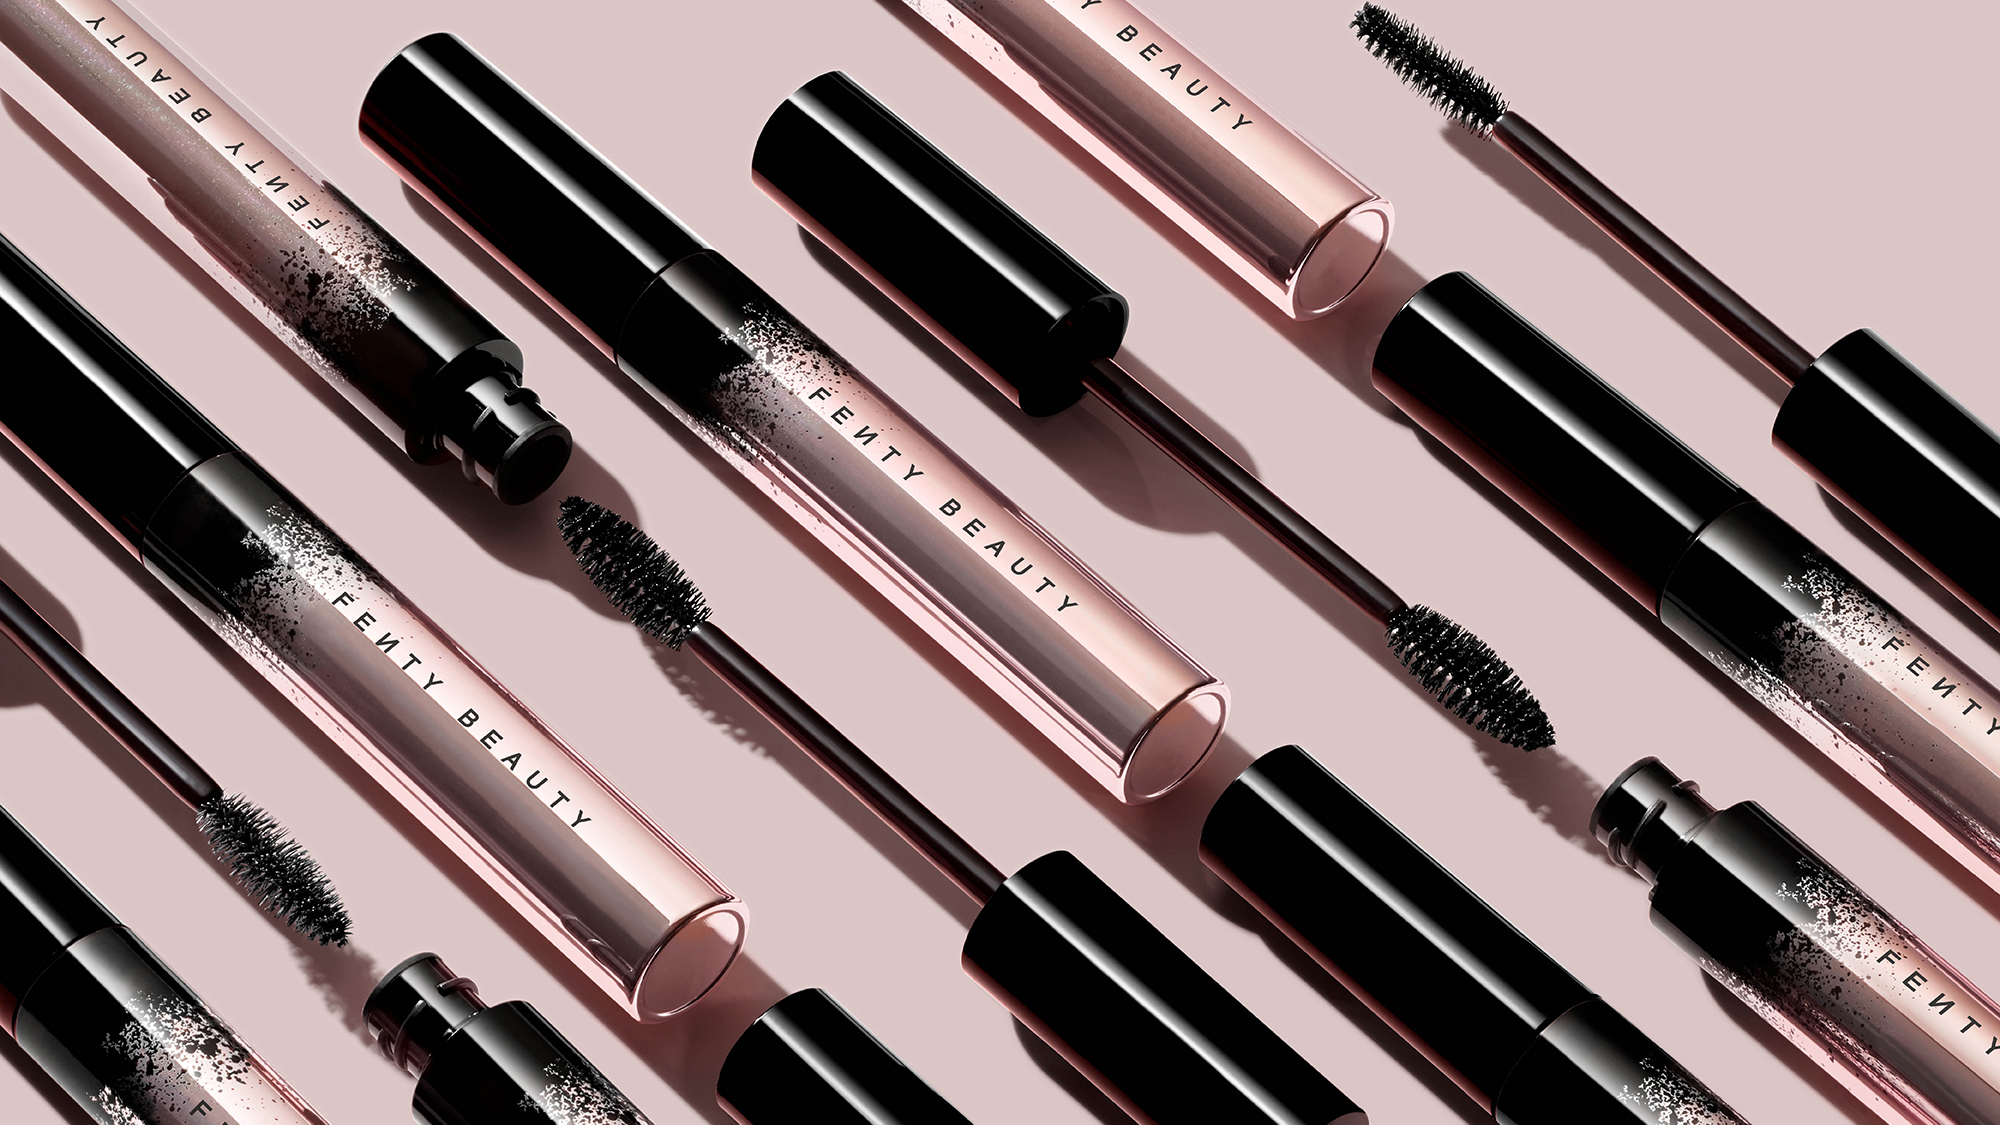 I tried the new Fenty mascara and I reckon you'll love it as much as I do